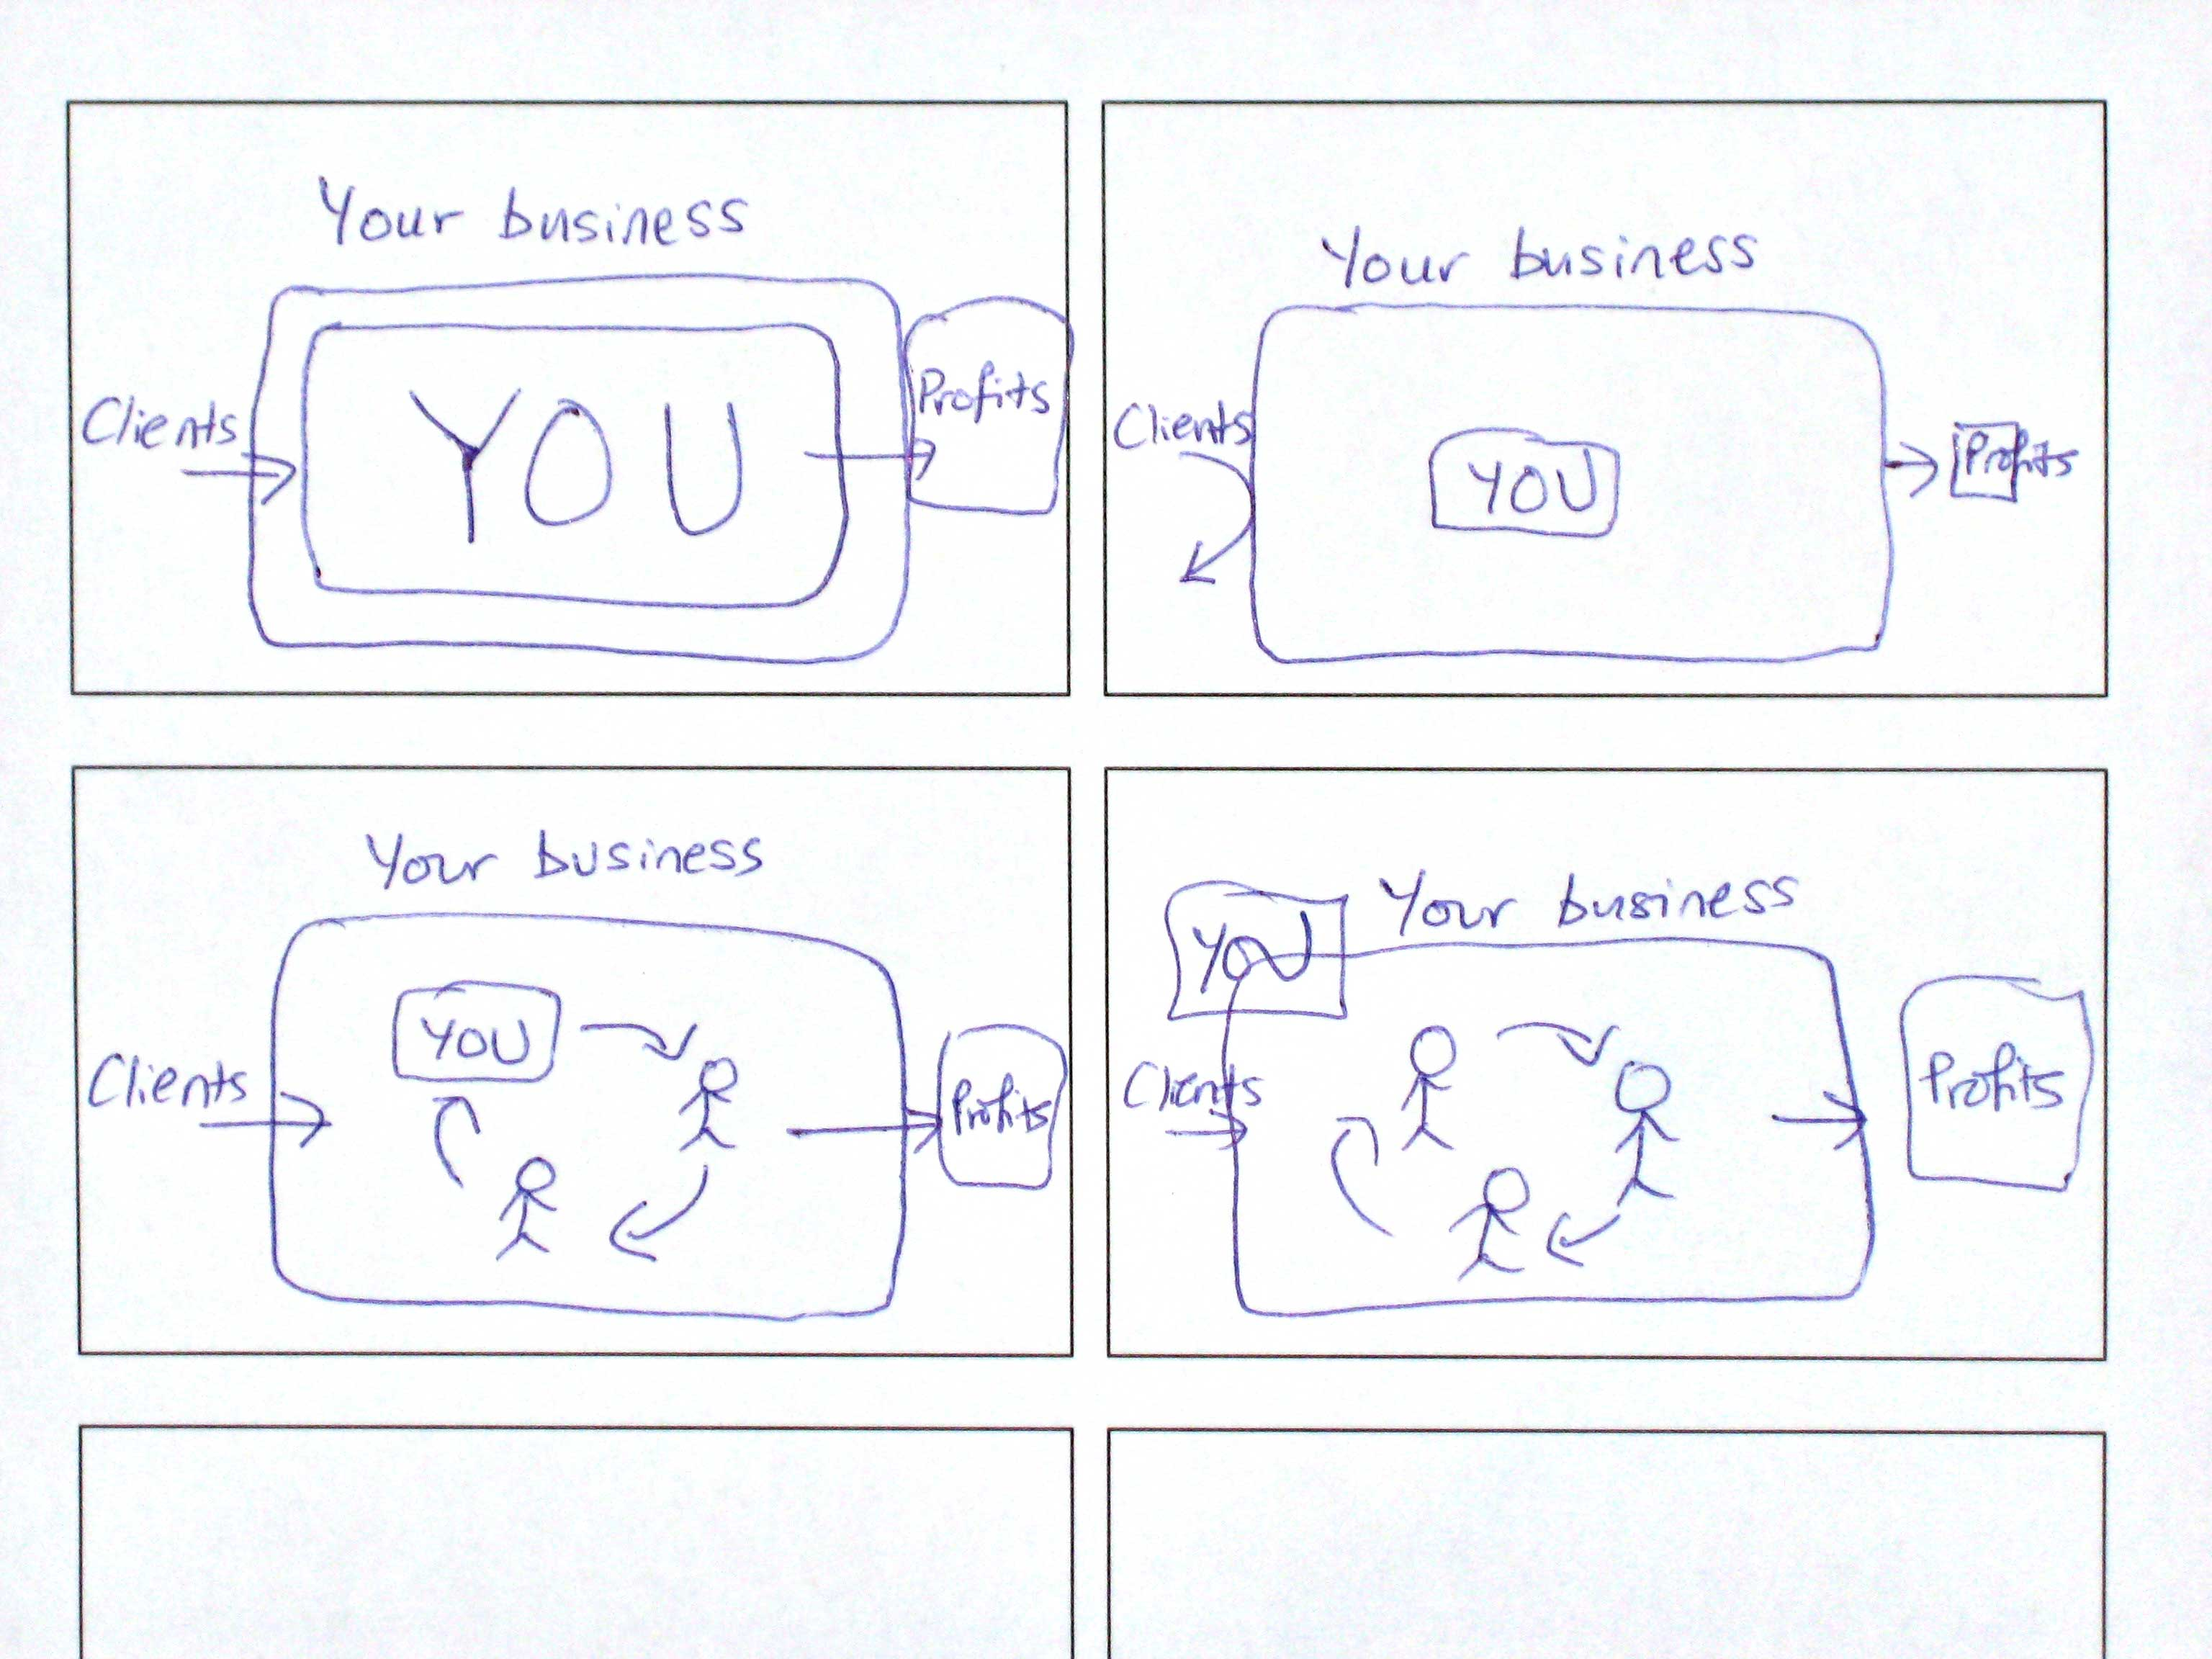 storyboard business presentations